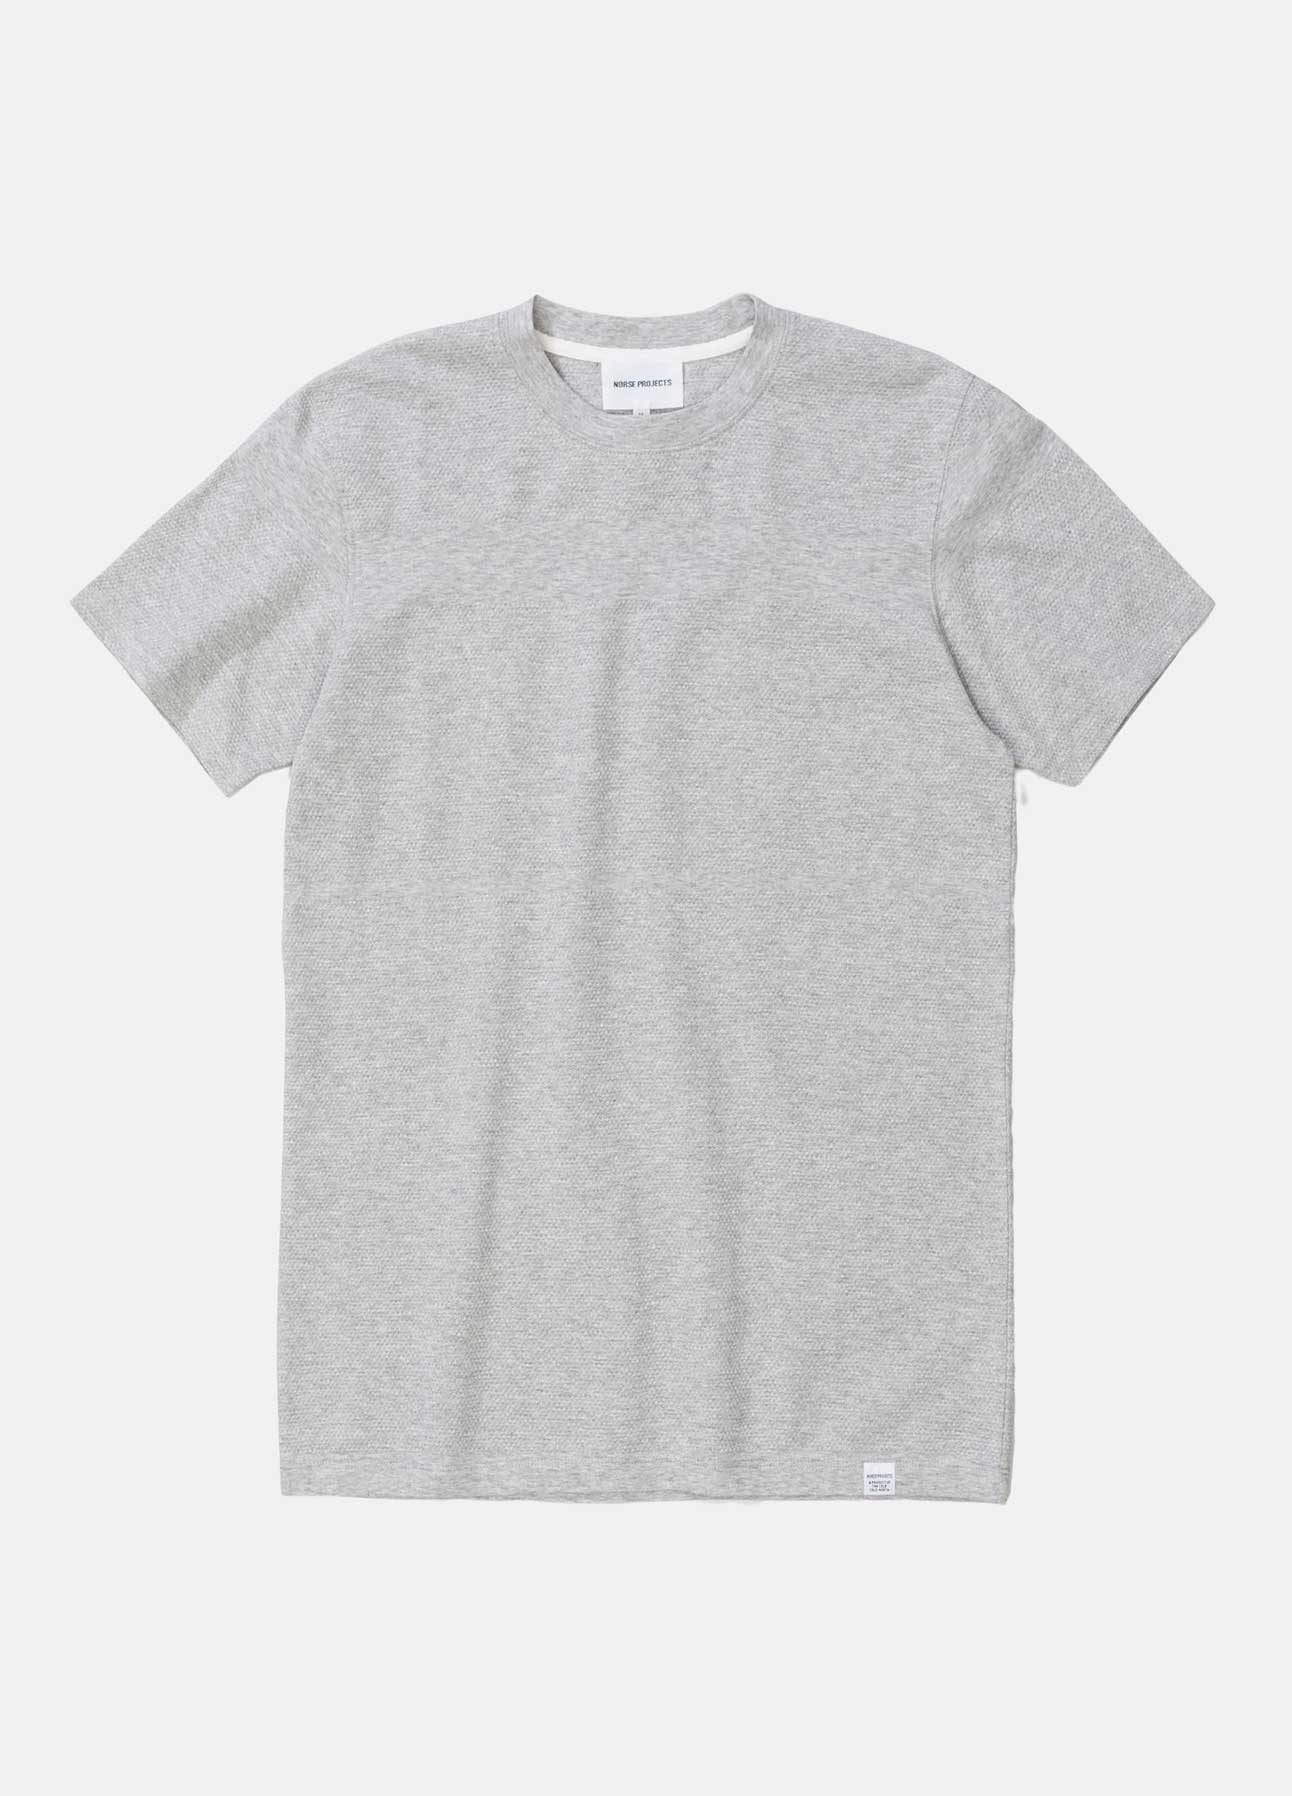 grå niels bubble t-shirt fra norse projects